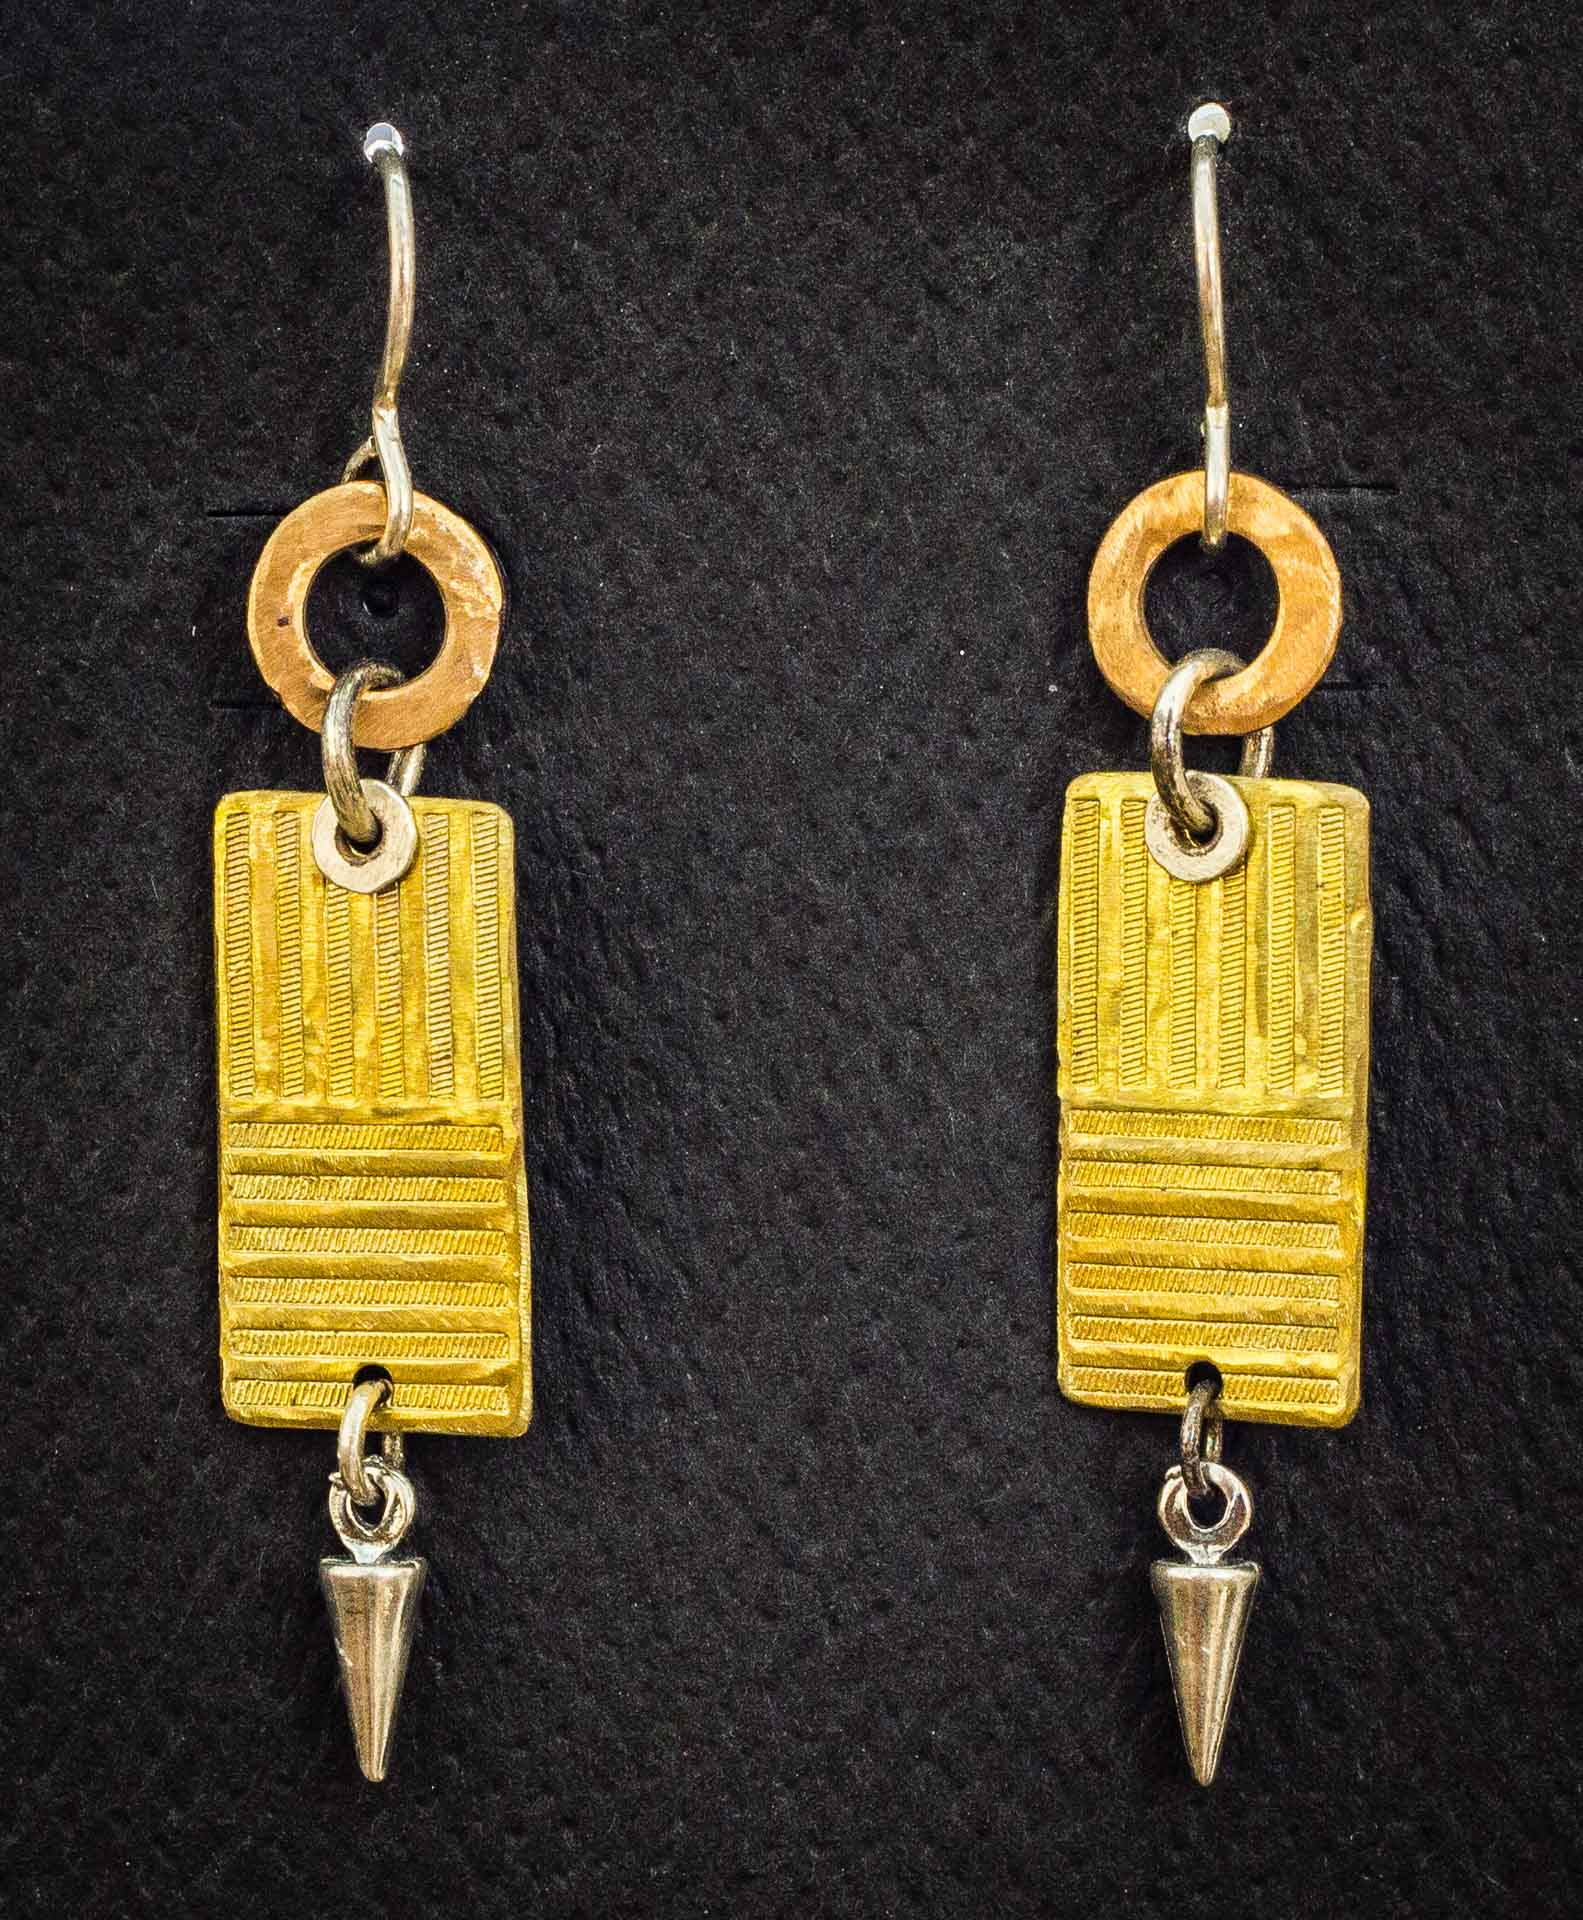 Earring pair 2 by Susie Hettleman